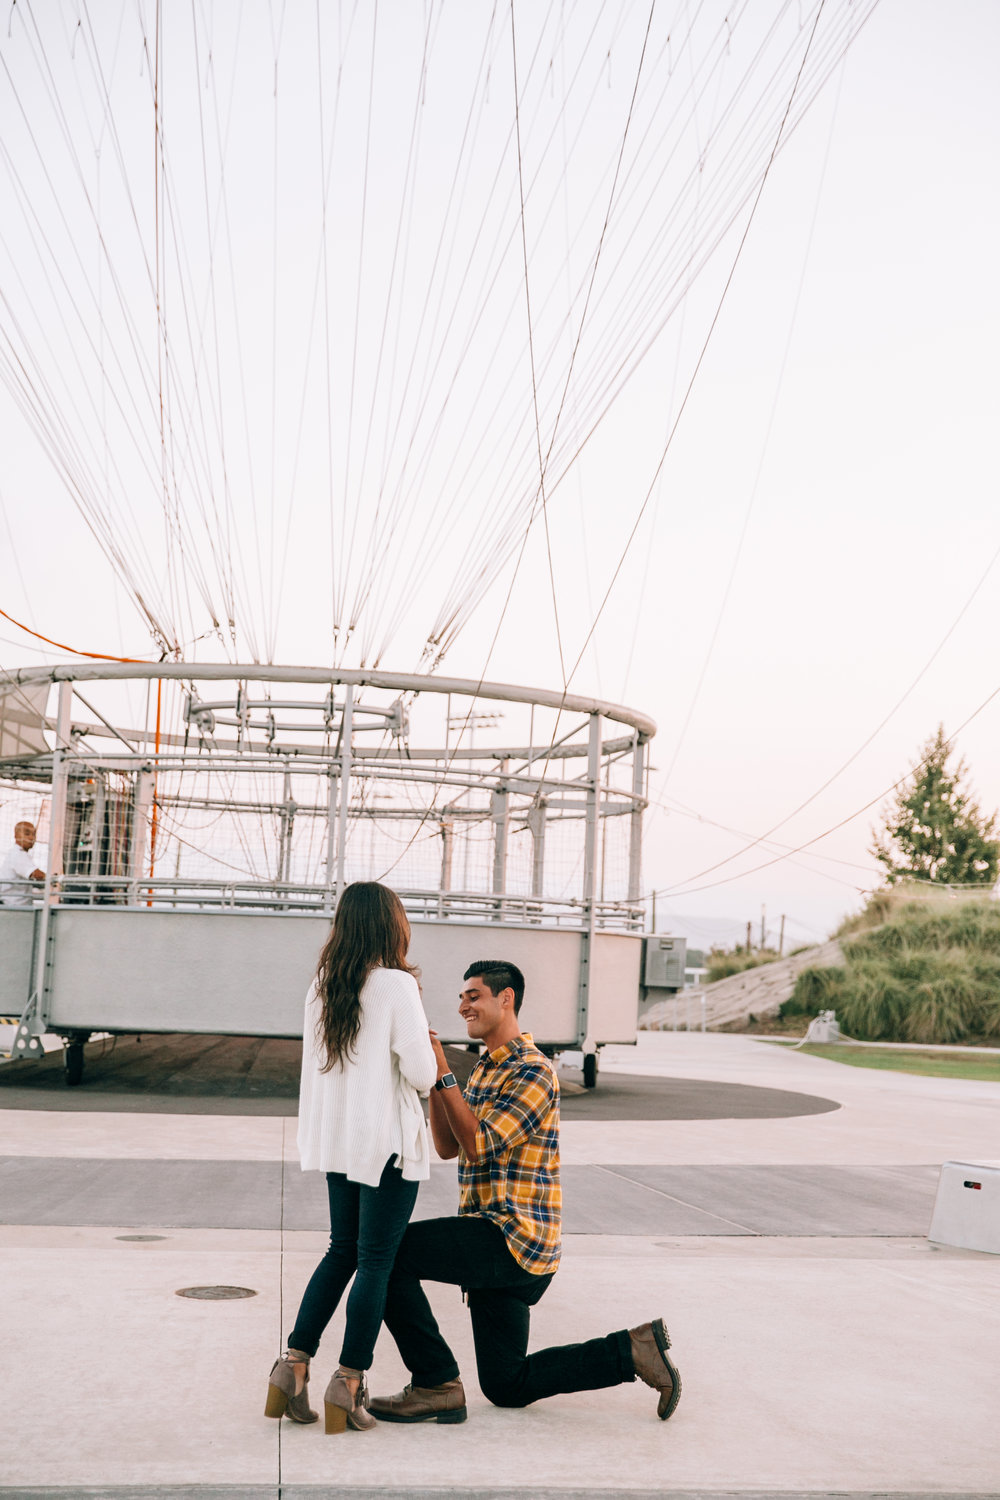 KaraNixonWeddings-Irvine-GreatPark-Proposal-12.jpg